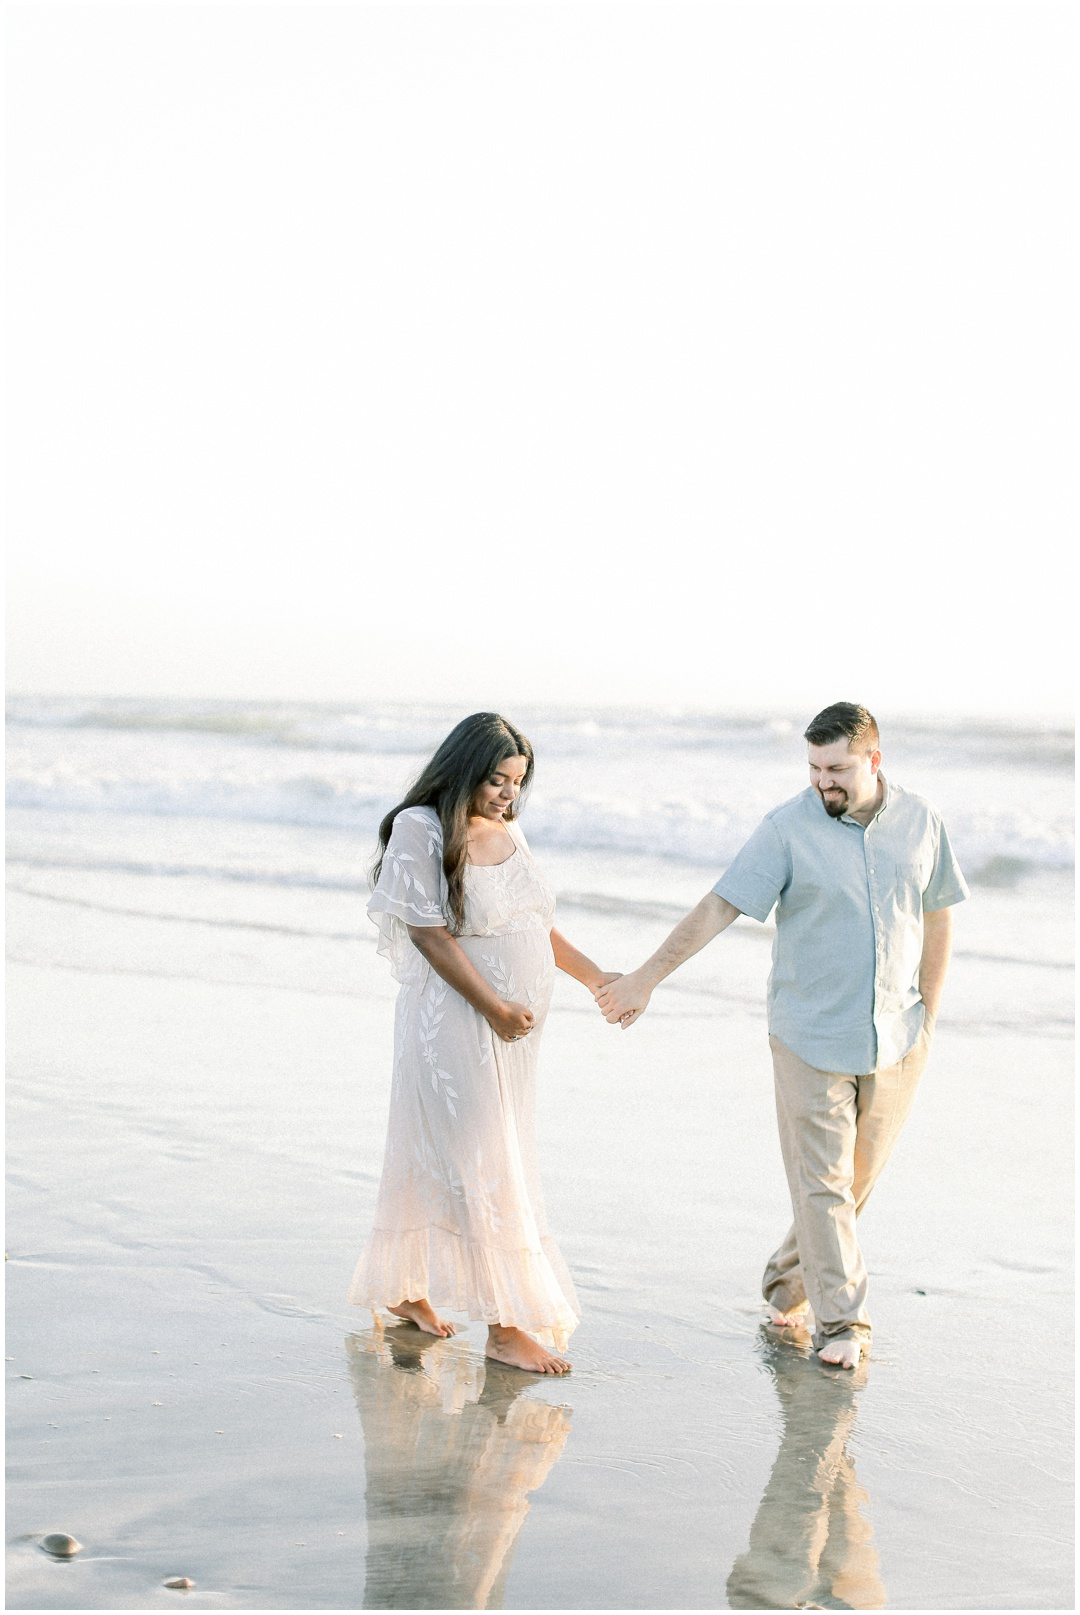 Newport_Beach_Newborn_Light_Airy_Natural_Photographer_Newport_Beach_Photographer_Orange_County_Family_Photographer_Cori_Kleckner_Photography_Huntington_Beach_Photographer_Family_OC_Newborn_Natasha_Flamenco_David_Flamenco_Maternity_Family_session__3417.jpg